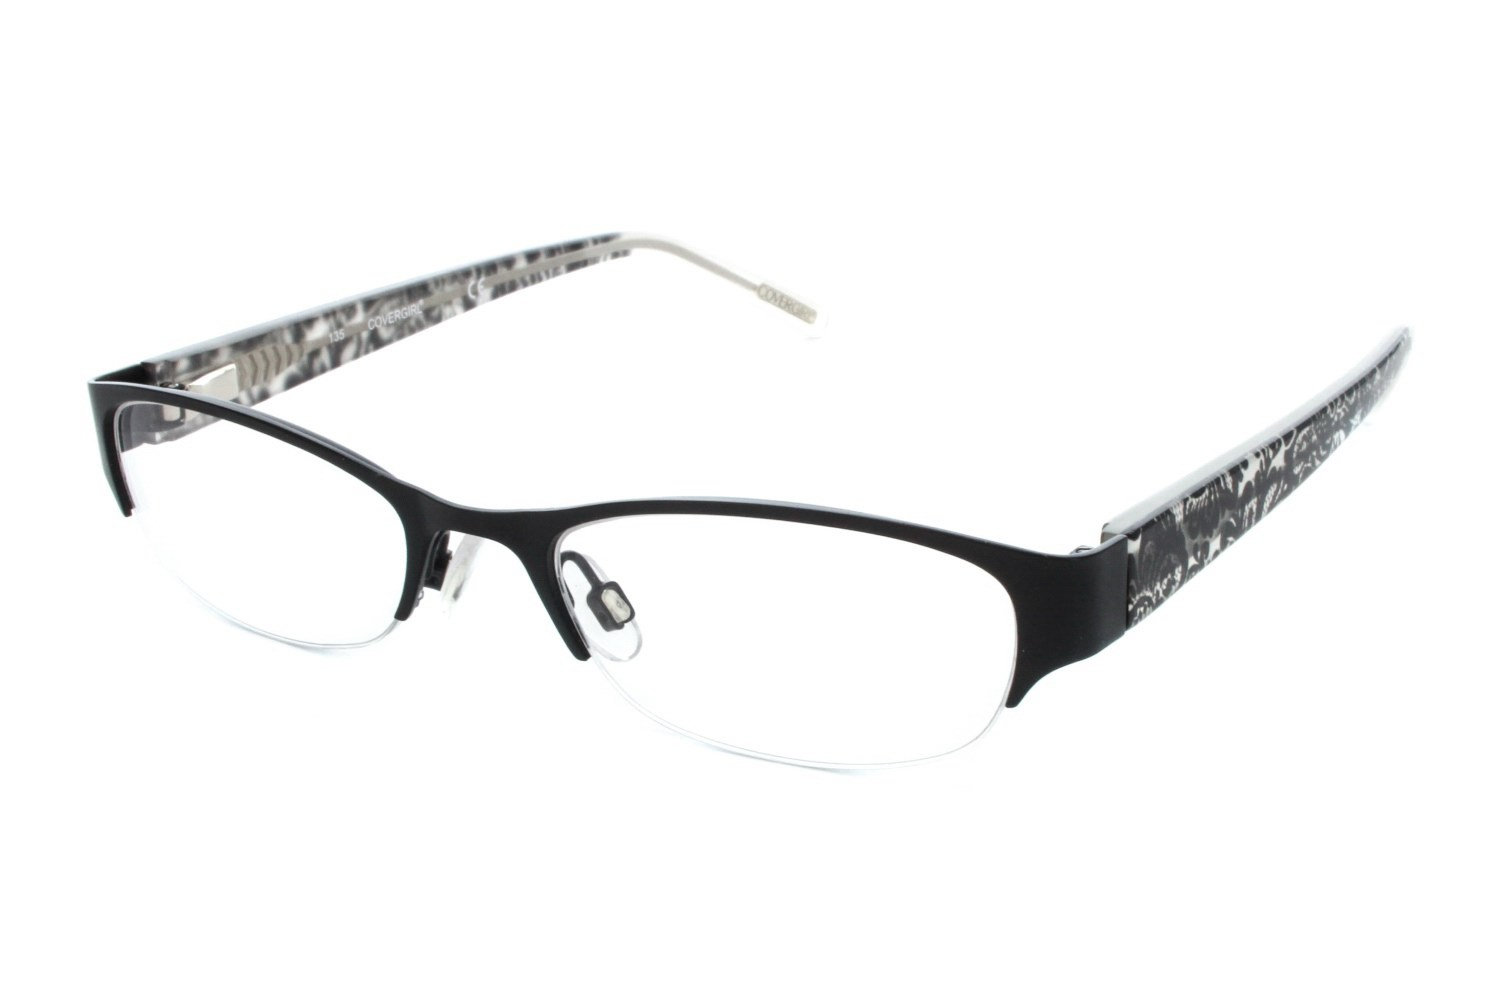 Covergirl CG0517 Prescription Eyeglasses Frames